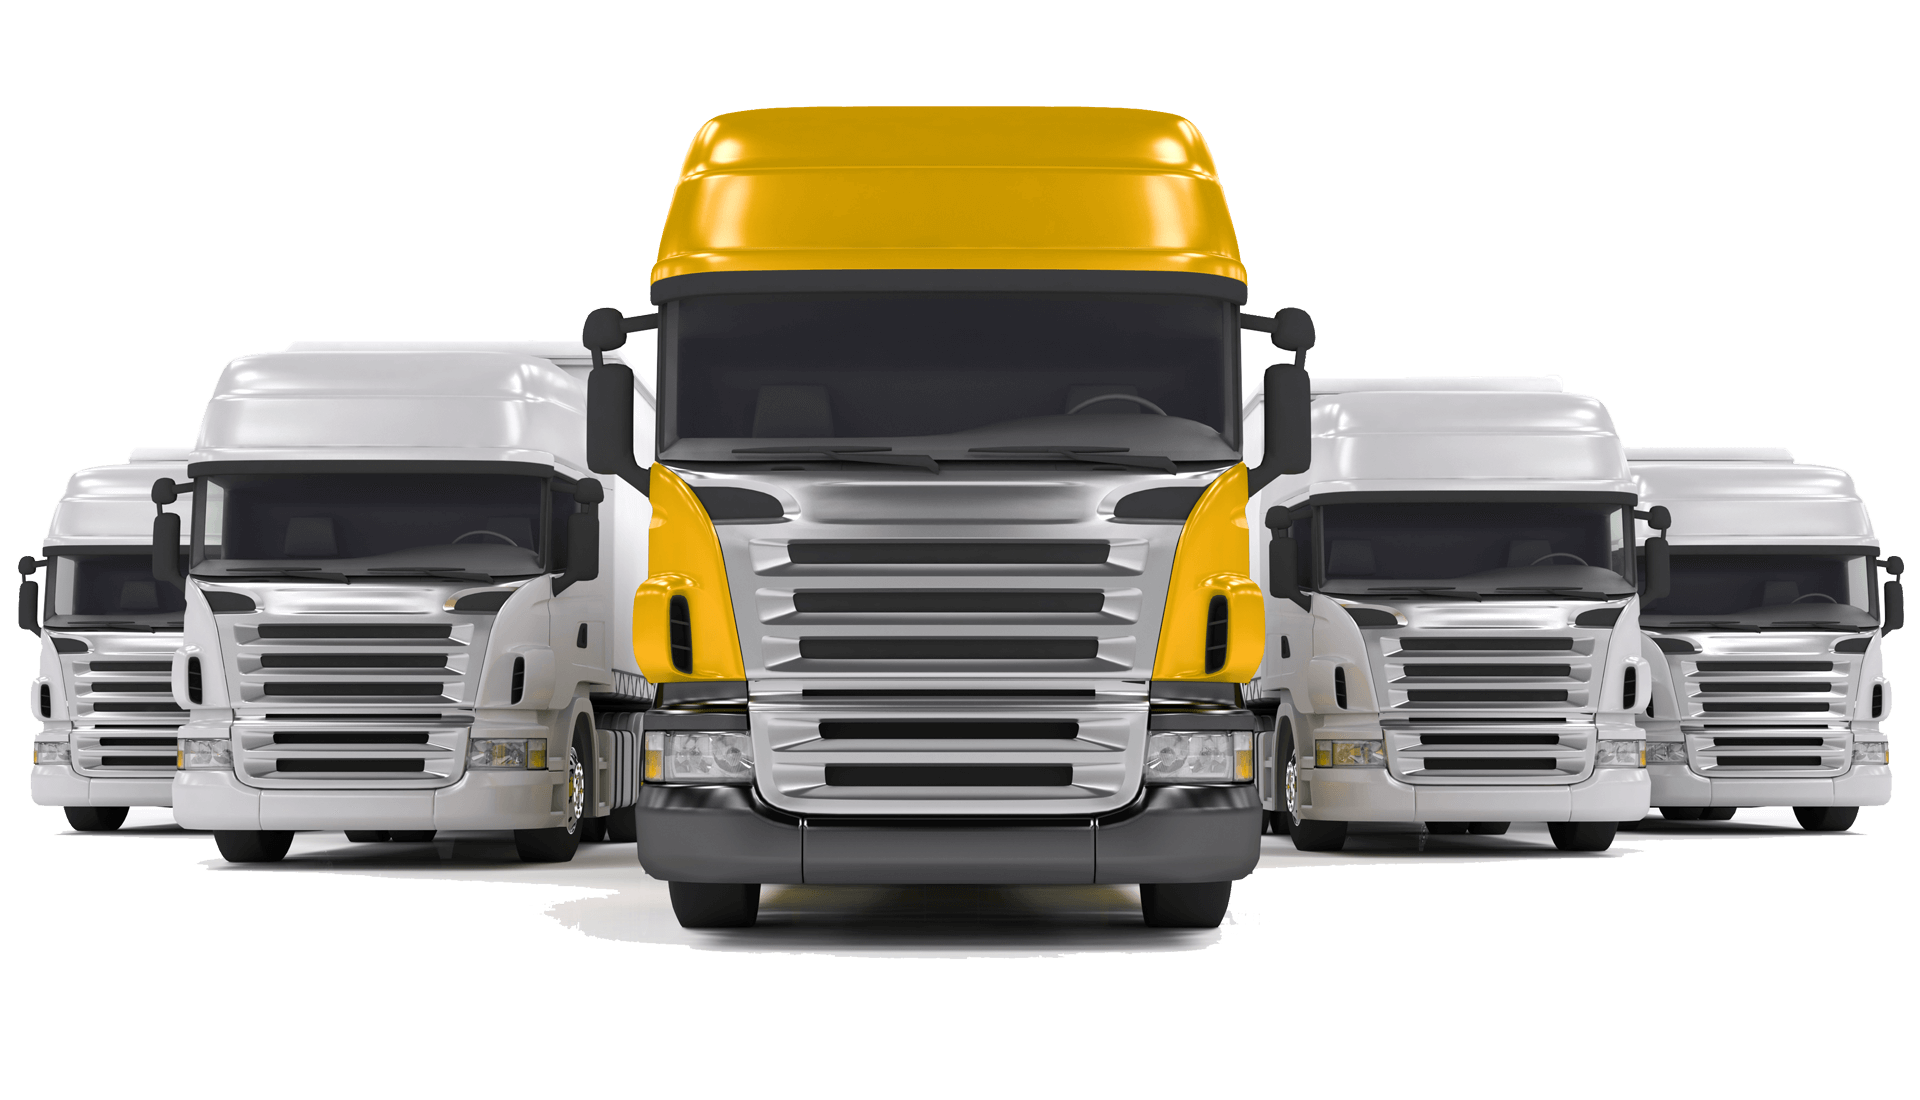 http://www.tonymrees.co.uk/wp-content/uploads/2017/07/trucks.png